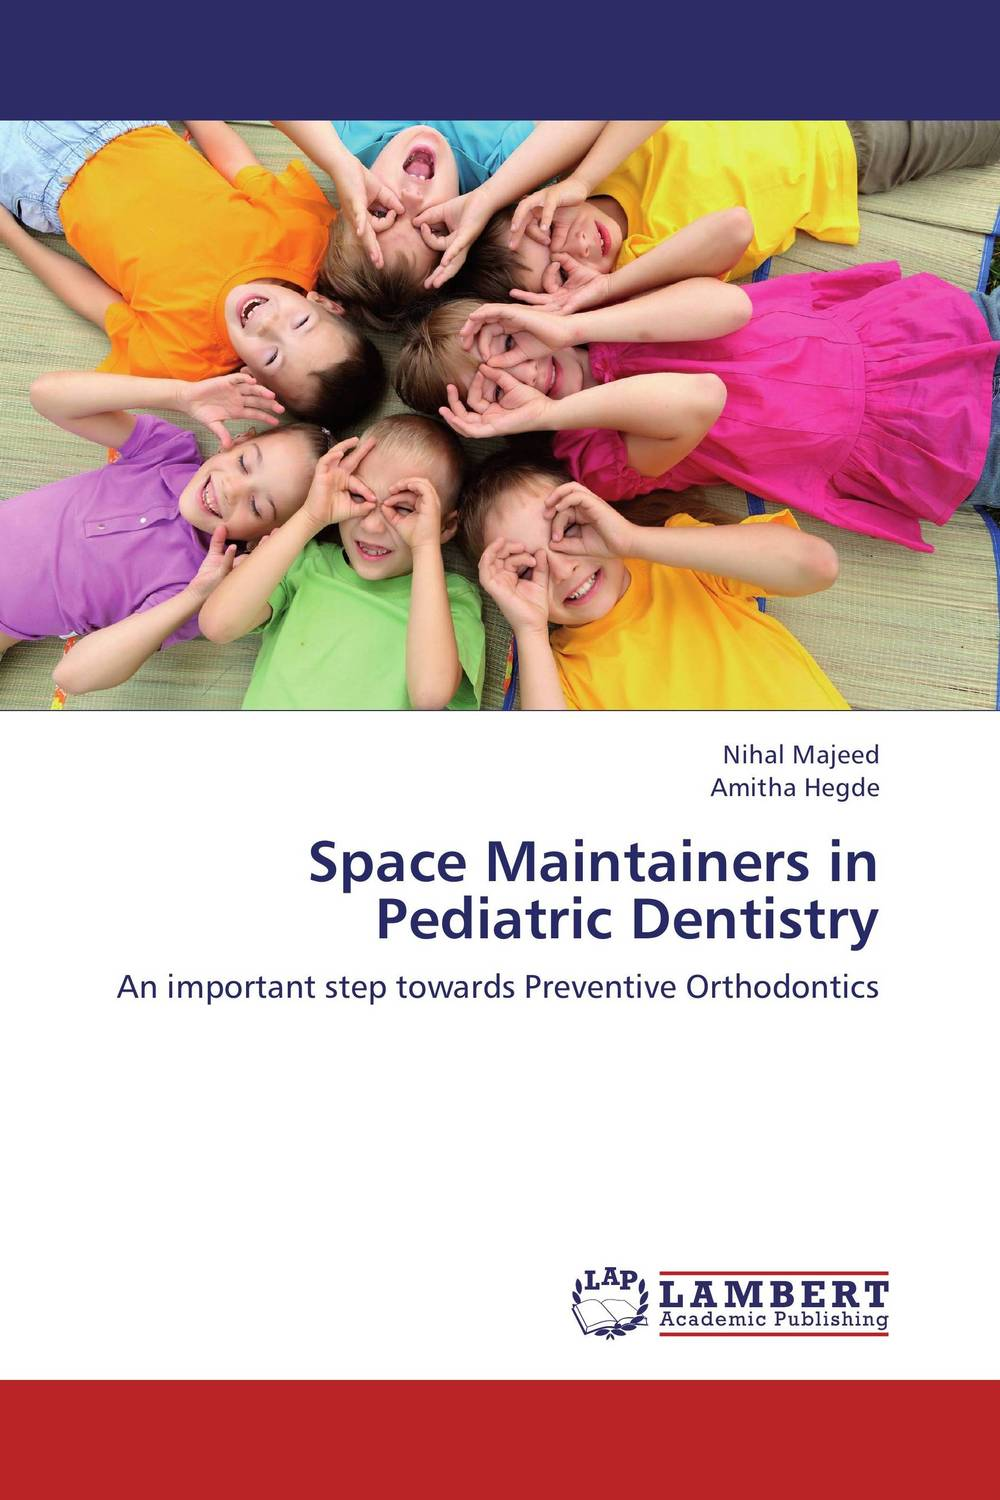 Space Maintainers in Pediatric Dentistry karanprakash singh ramanpreet kaur bhullar and sumit kochhar forensic dentistry teeth and their secrets